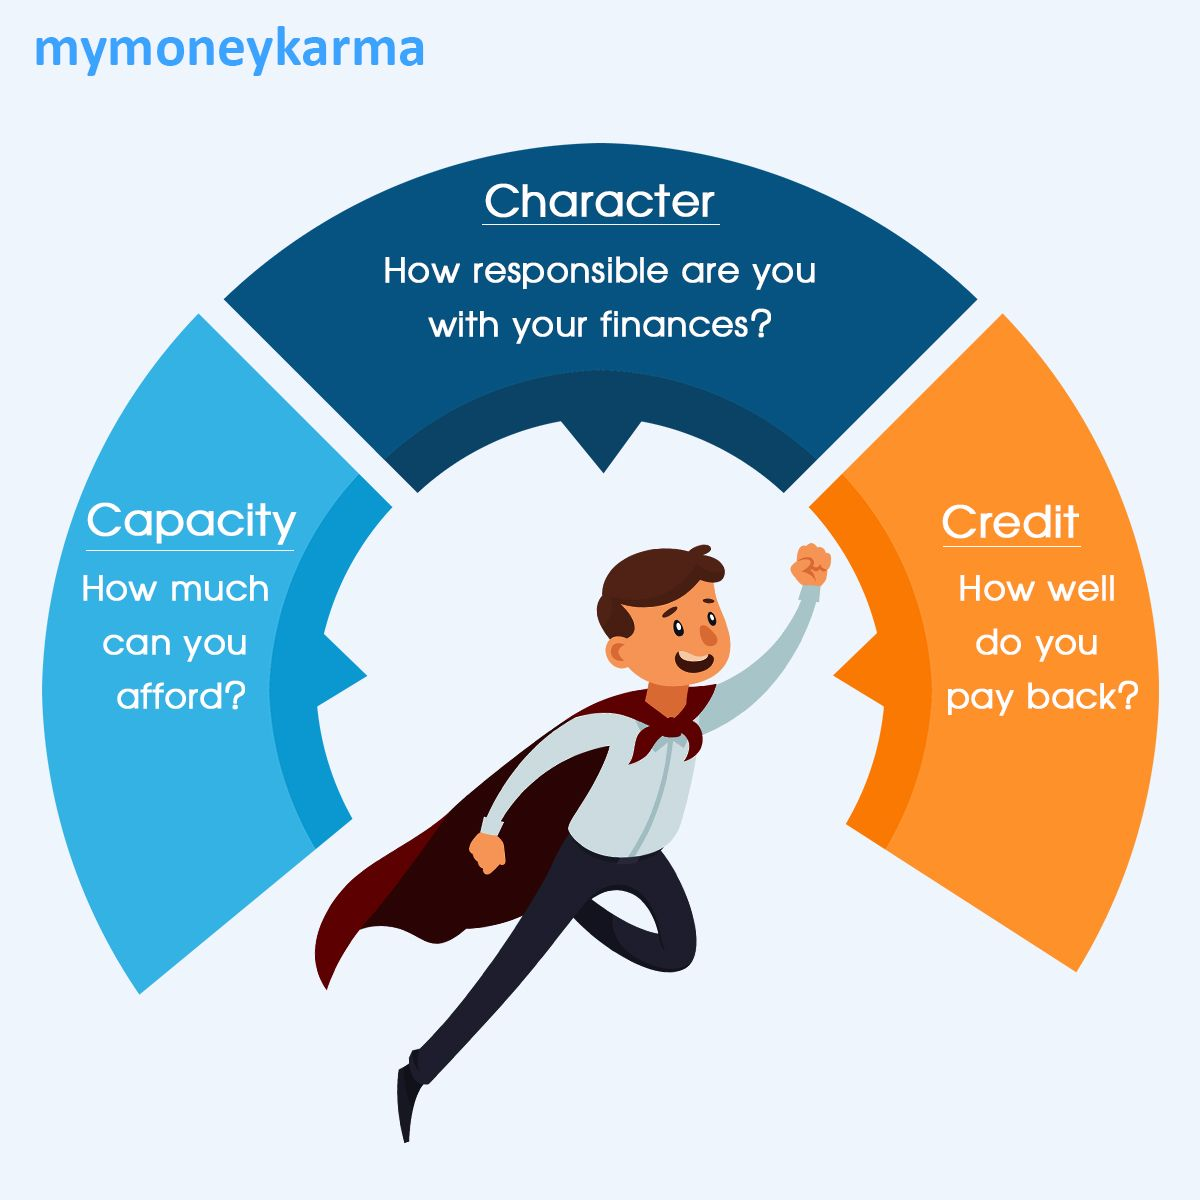 Are you aware of the 3Cs that a bank looks at for